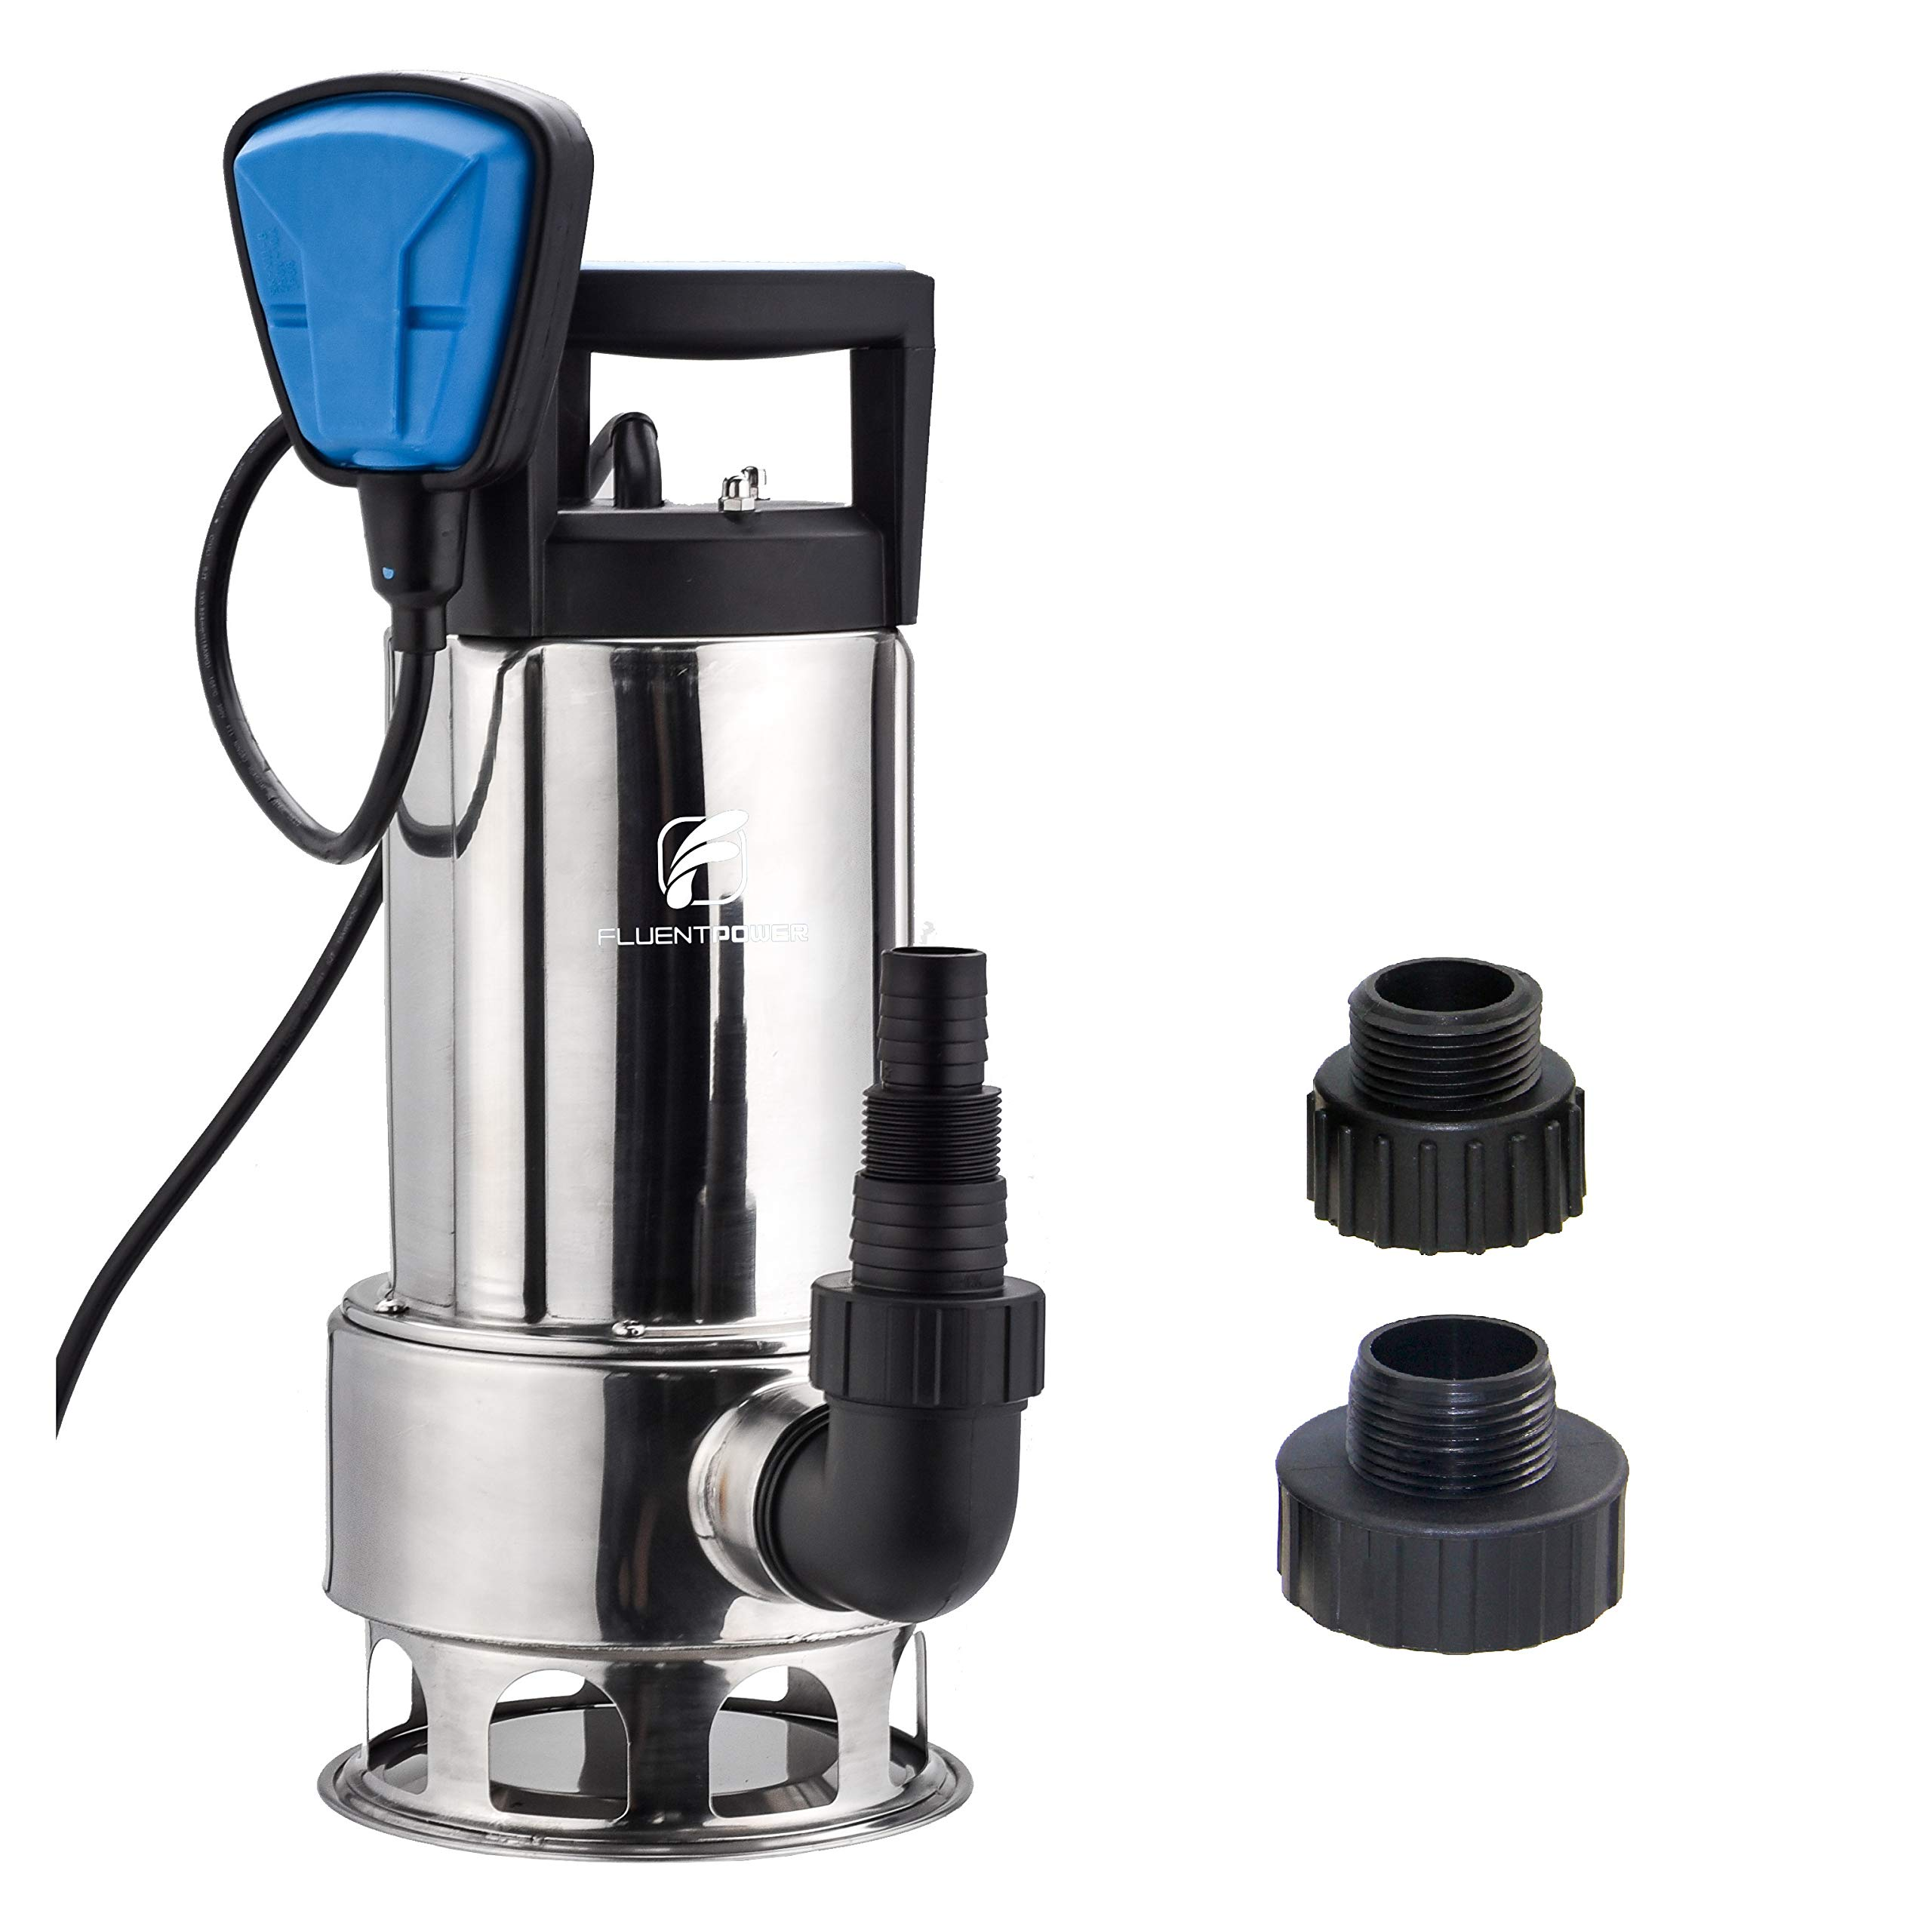 FLUENTPOWER Stainless Longer Duration Submersible Water Removal Pump, with Voidable Float Switch Function, 3/4'' Standard Garden Hose Connector Included, 1HP 4000 GPH for Clean and Dirty Water by FLUENTPOWER